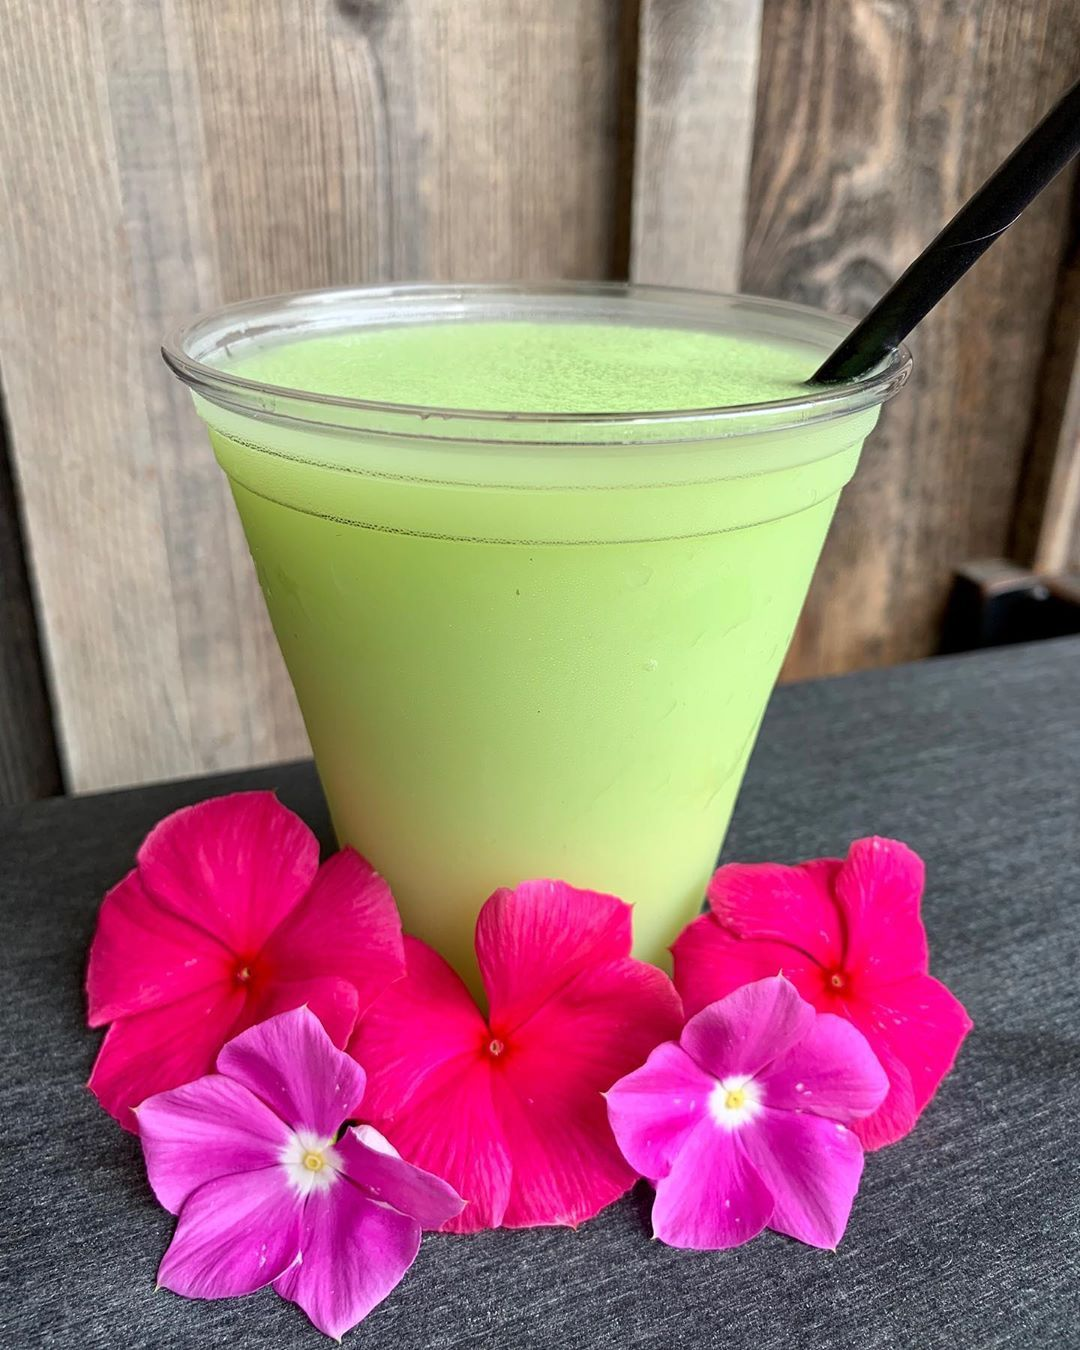 This Disney Springs Restaurant Is Now Serving Frozen Dole Whip Lime Cocktails